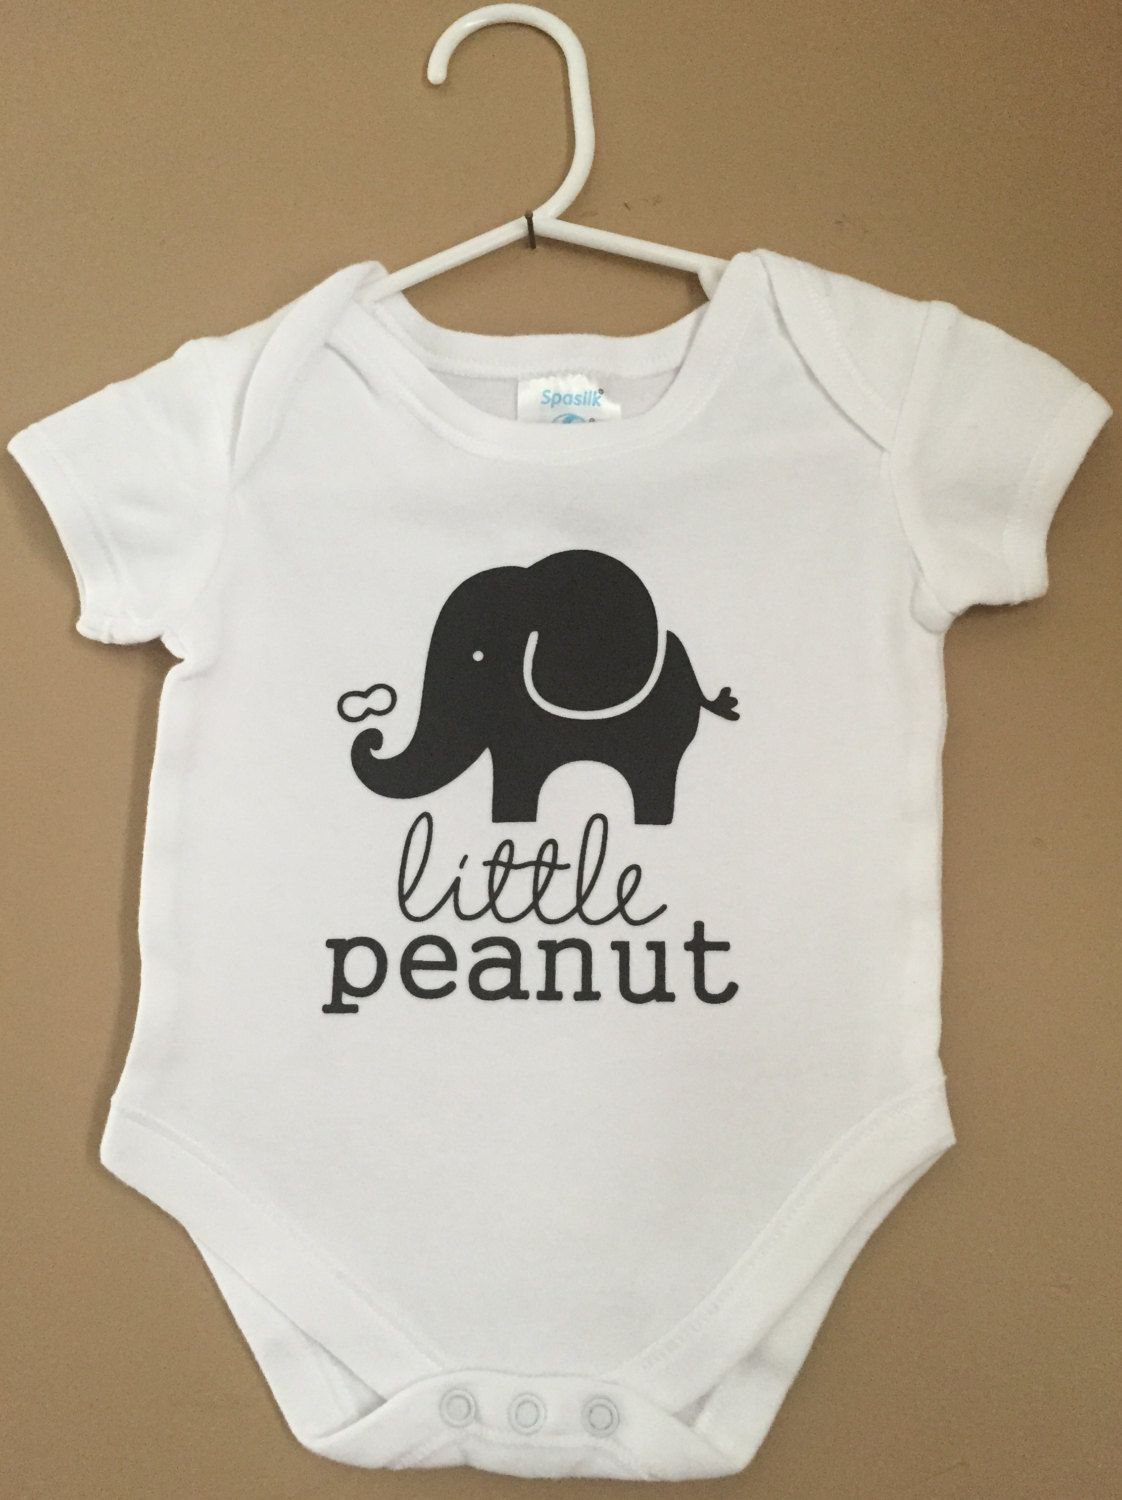 Make your own custom onesies! Use our design center to add your own text, art, and images. It's easy!